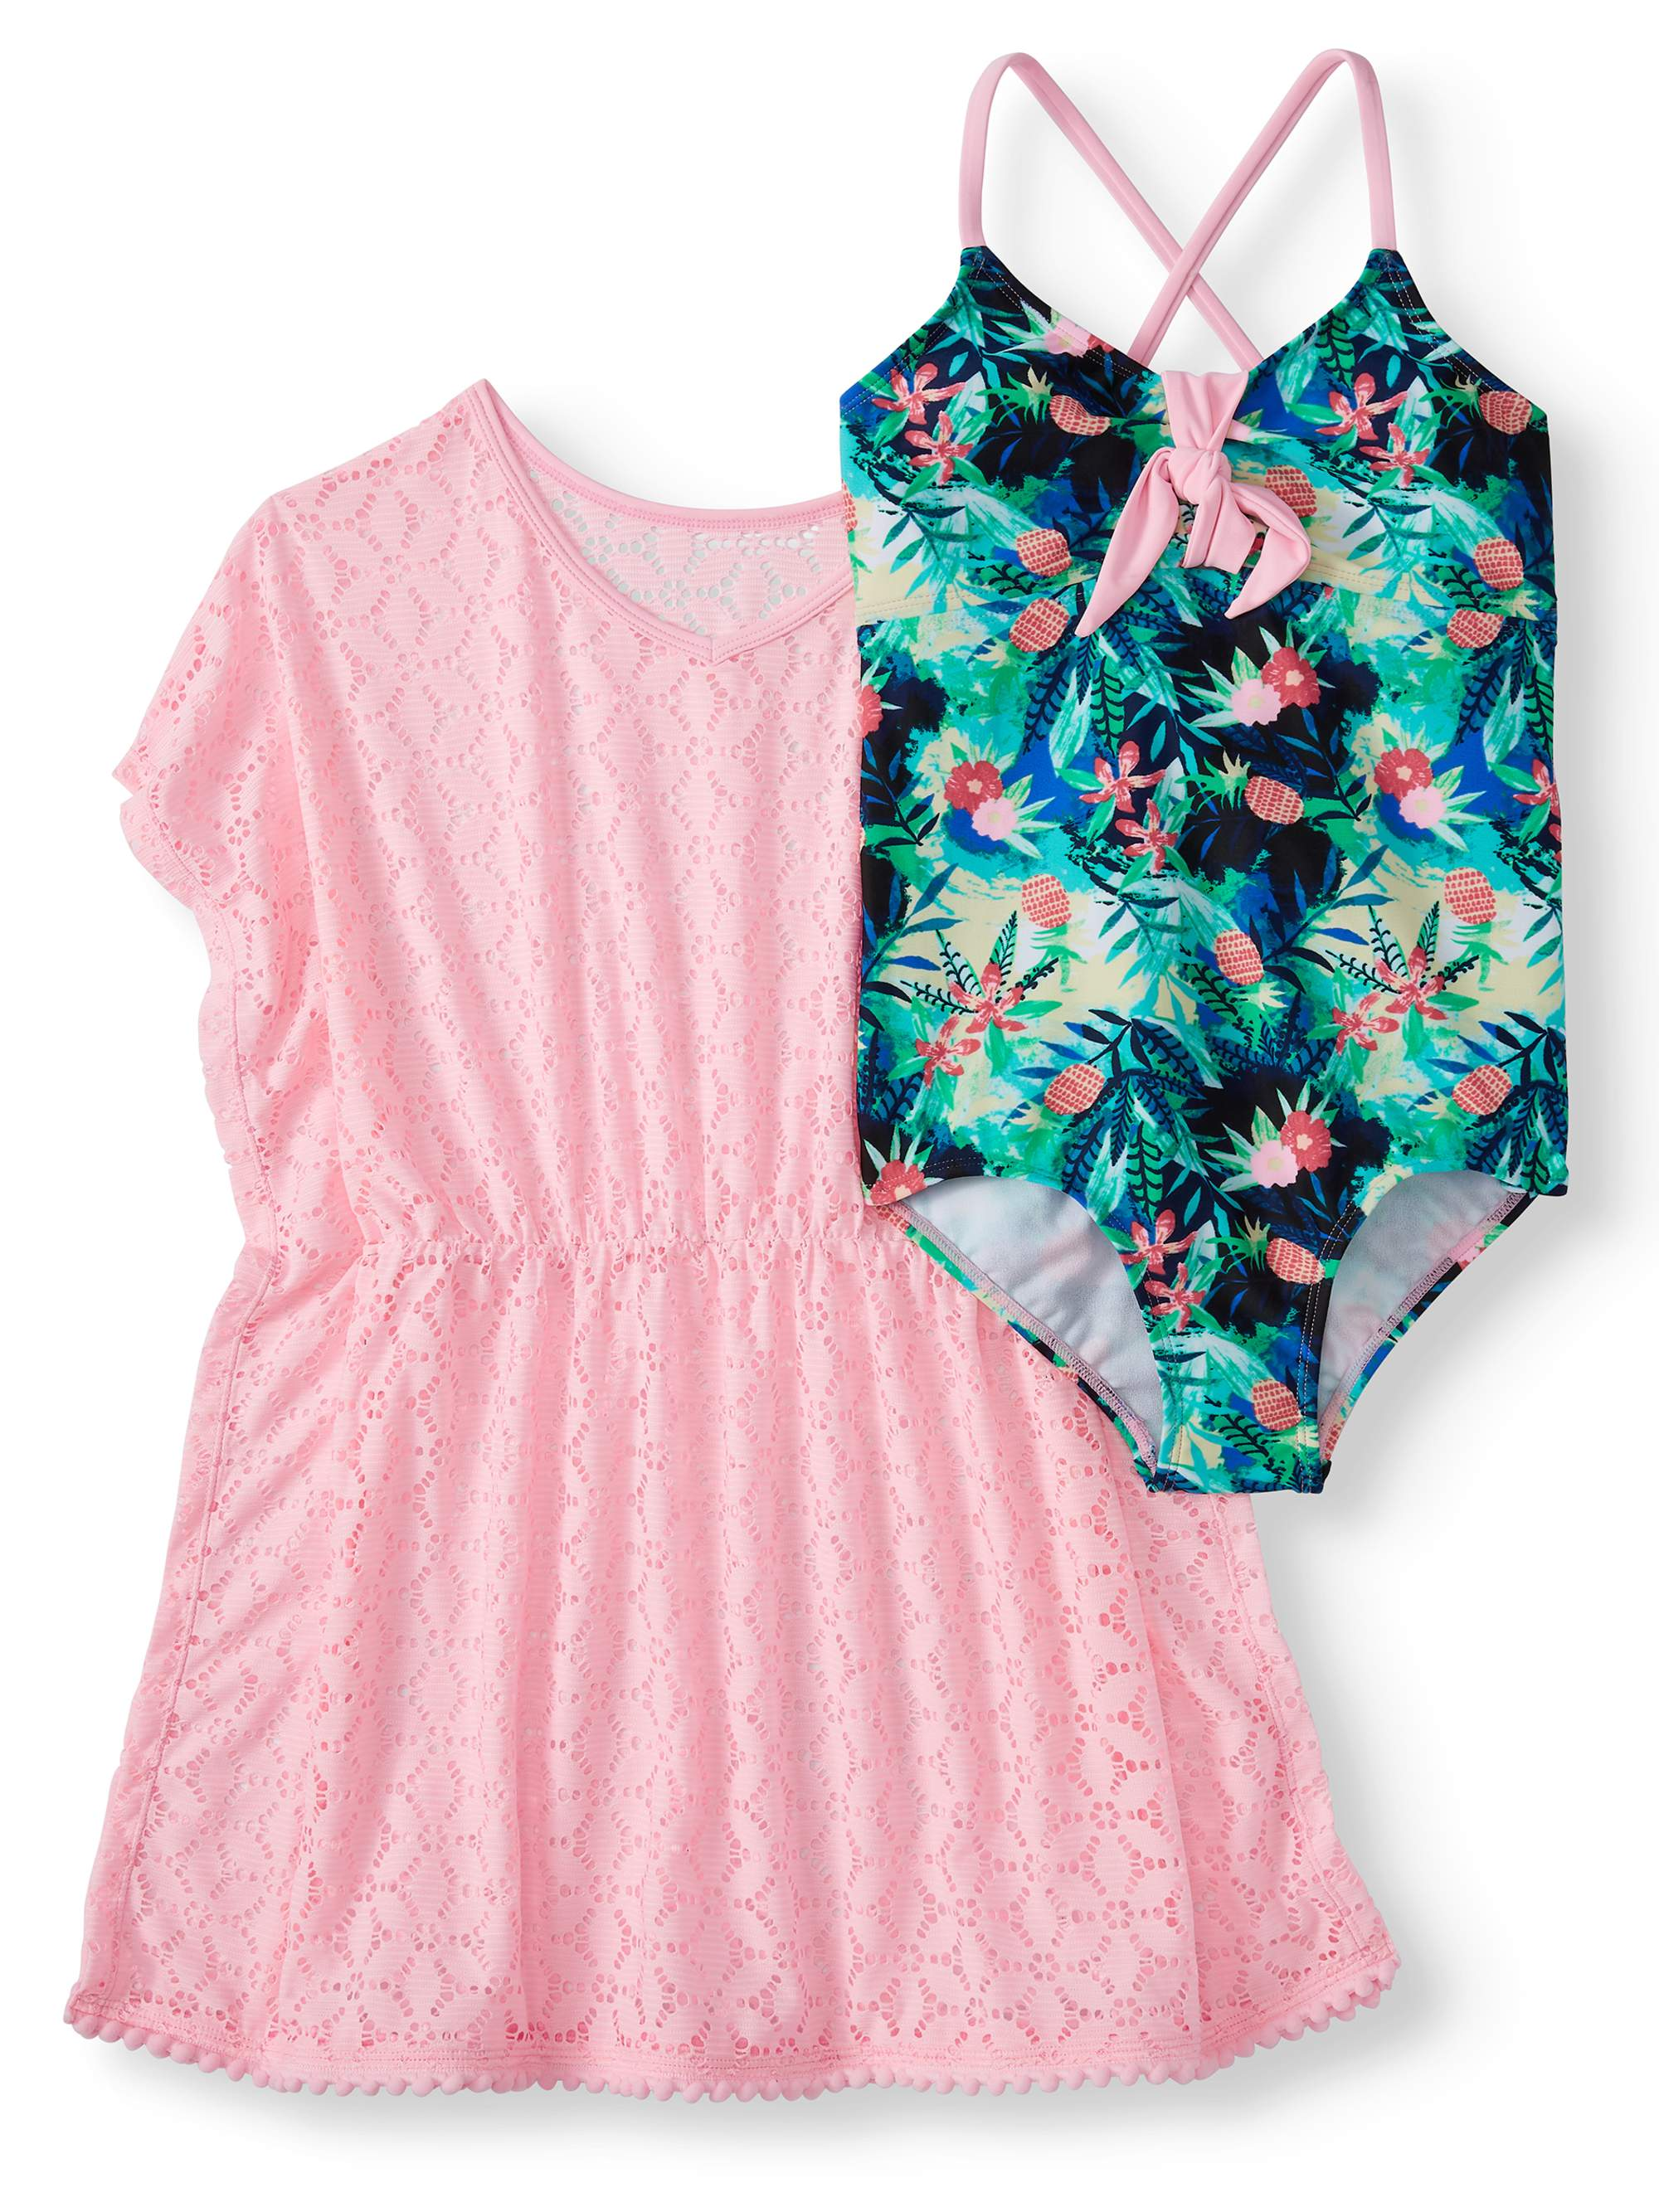 Girls' Crossback One-Piece Swimsuit and Kaftan Coverup, 2-Piece Set